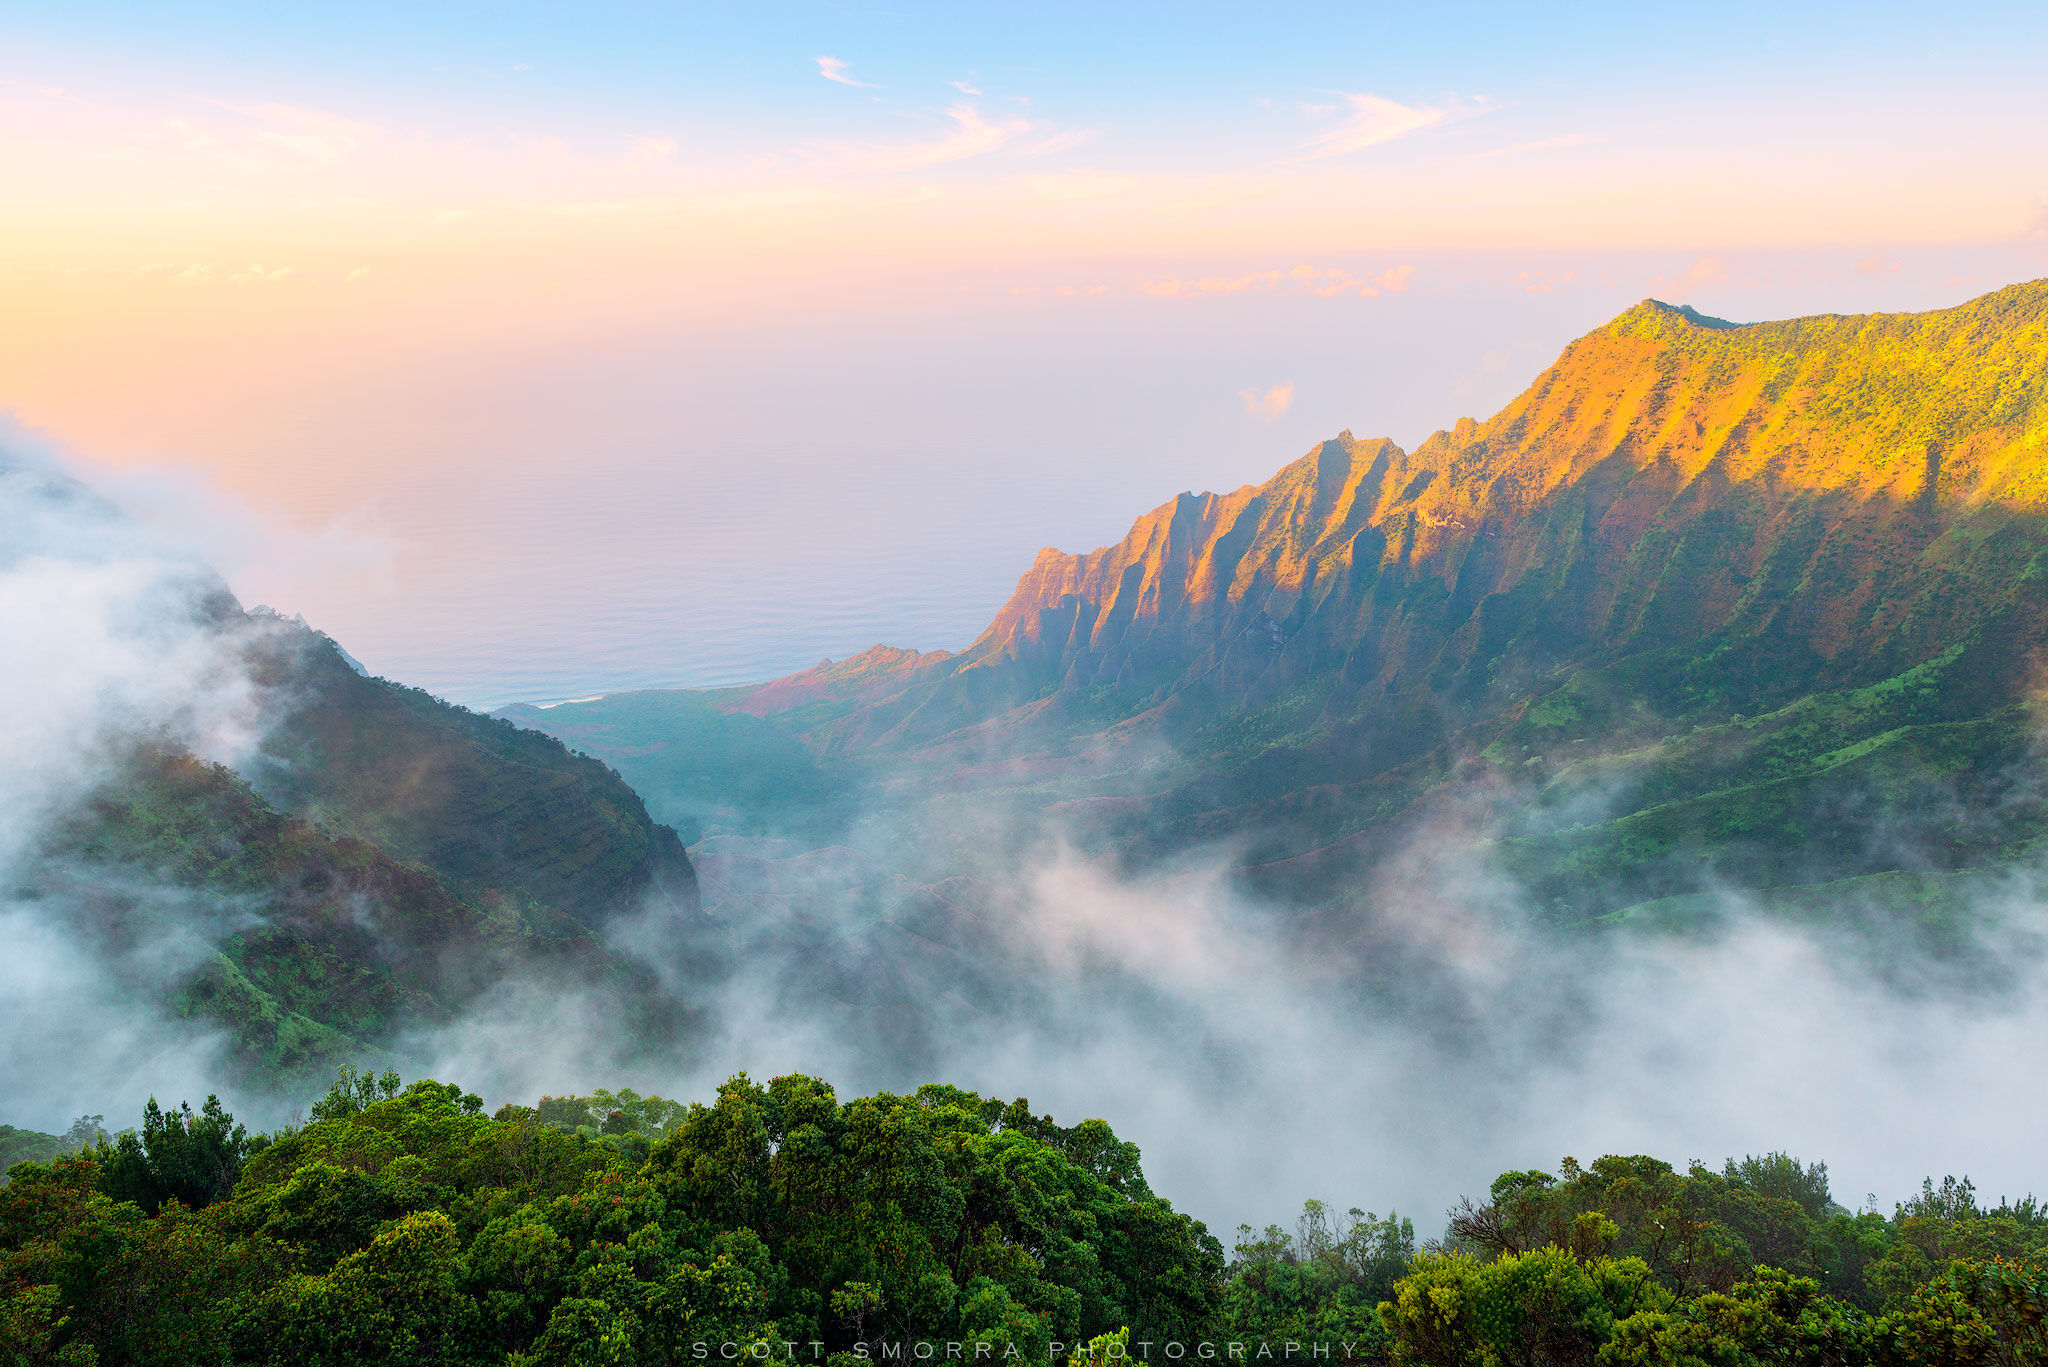 Clouds and fog slowly move in and out of Kalalau Valley on the Hawaiian Island of Kaua'i as sunset light illuminates the pali (cliffs) surrounding the valley.